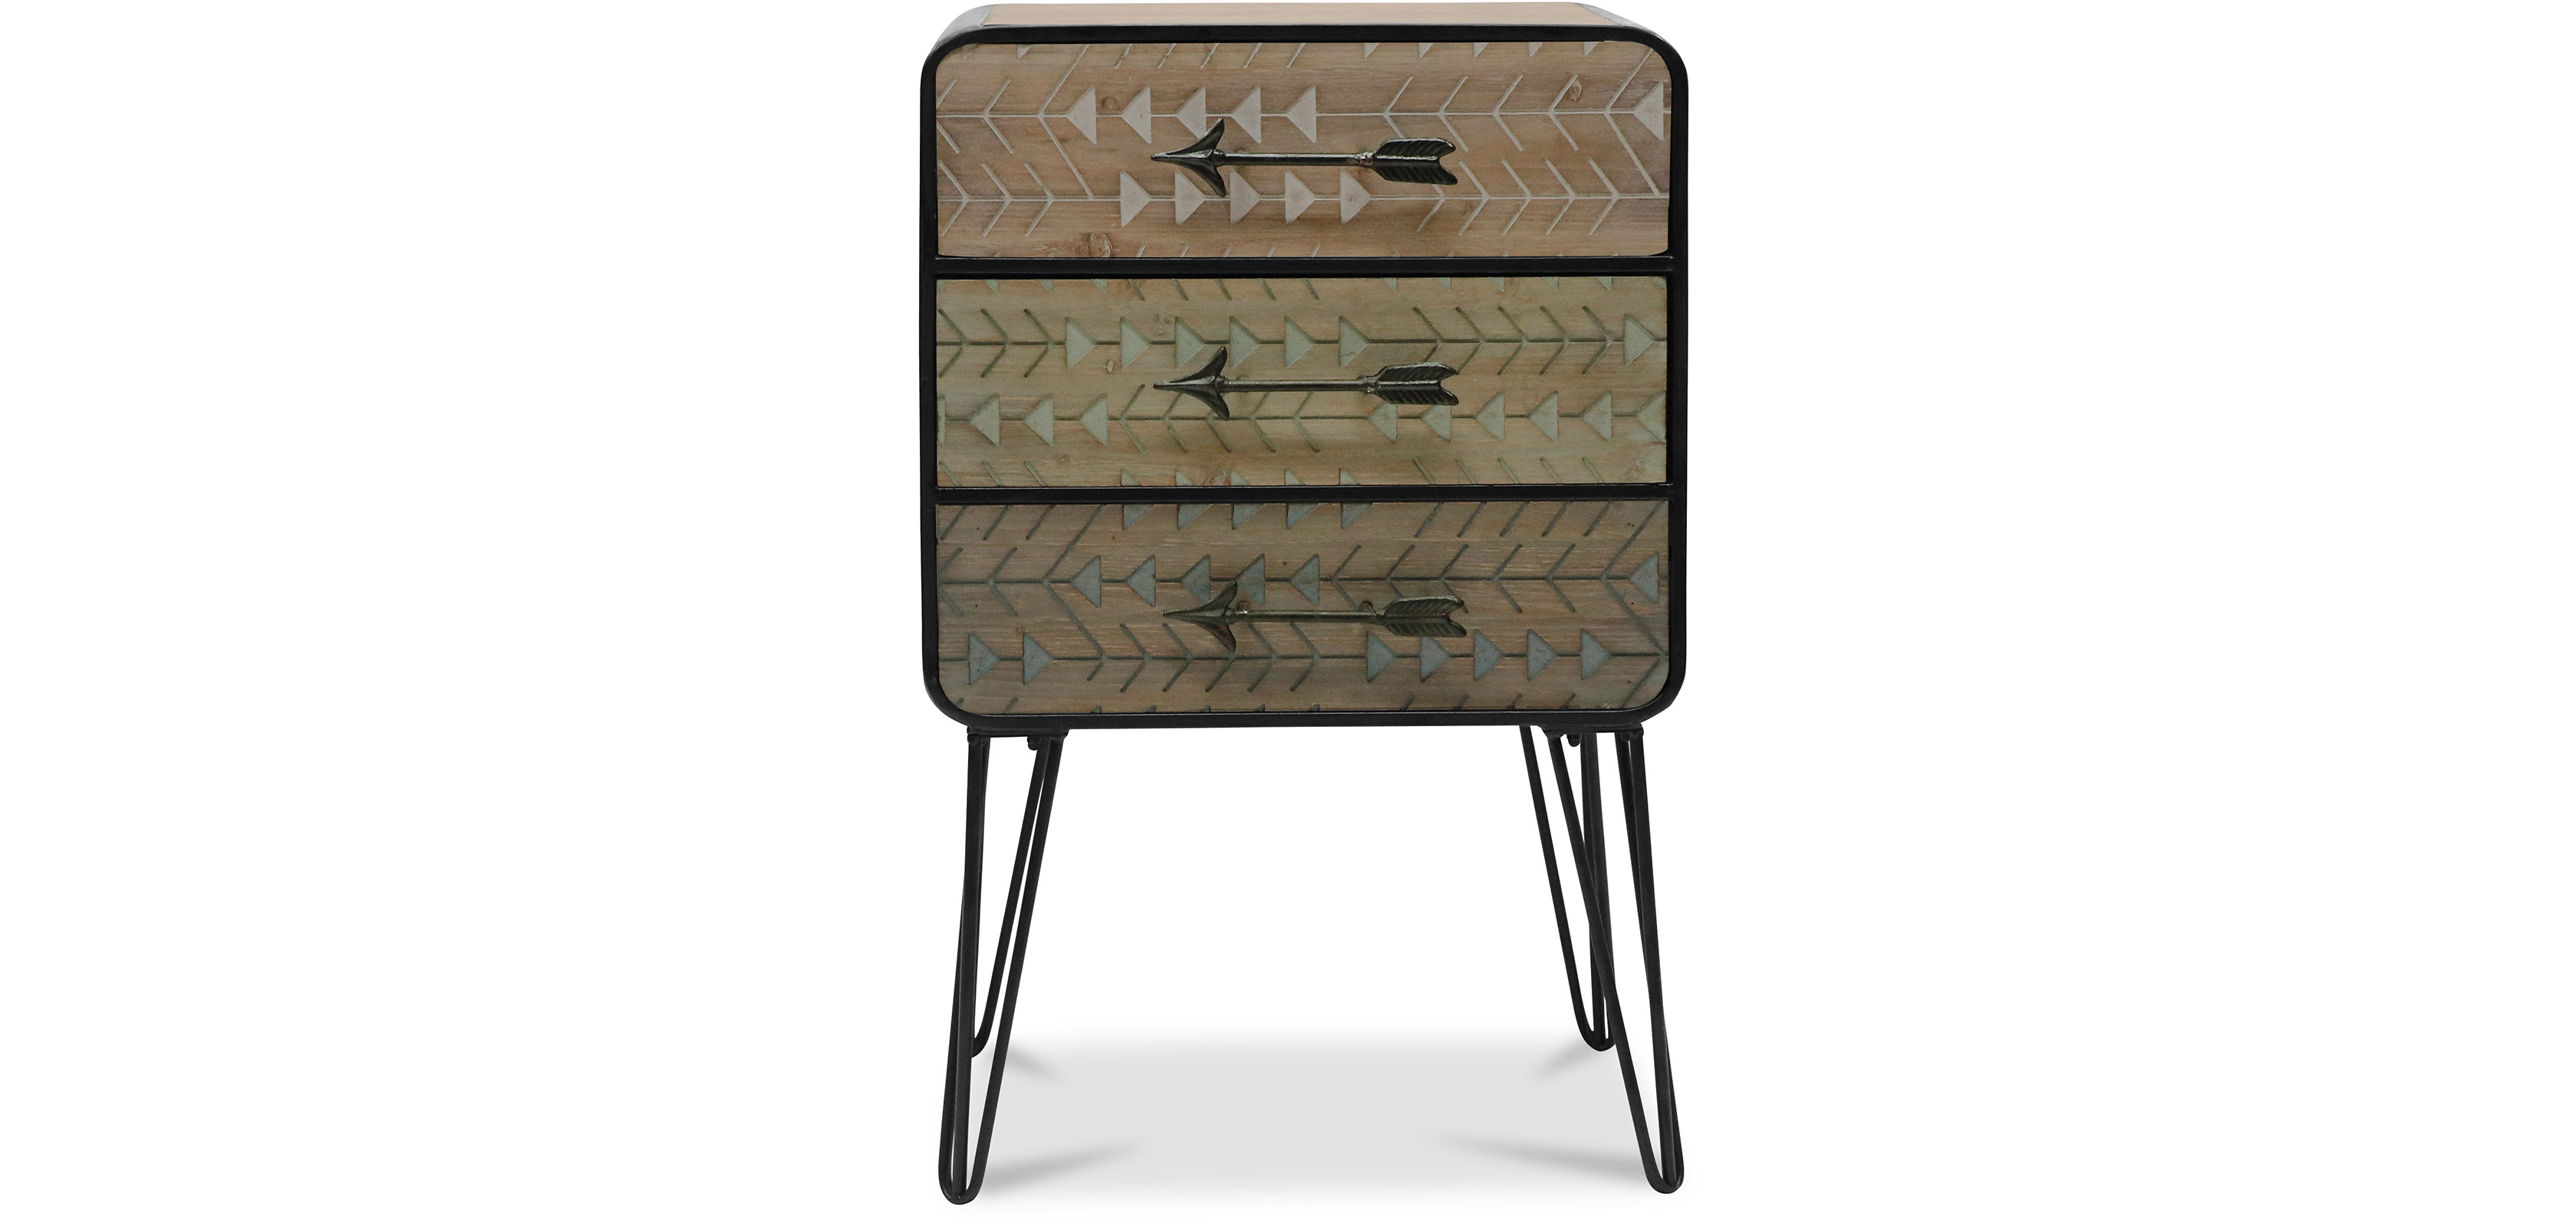 Commode pieds pingle style industriel pas cher - Commode style industriel ...